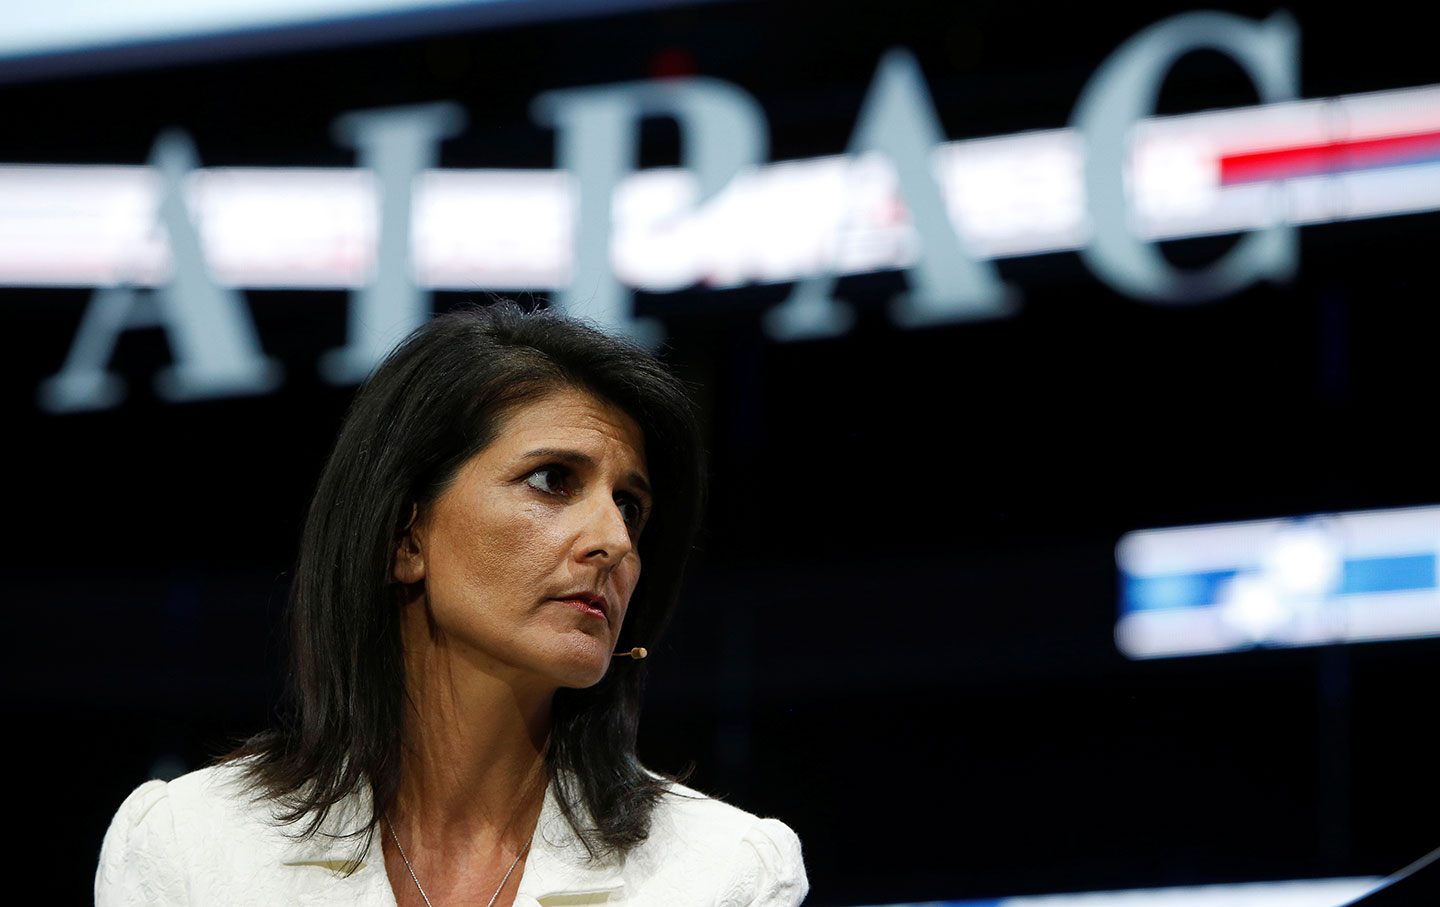 UN Ambassador Nikki Haley speaks at AIPAC